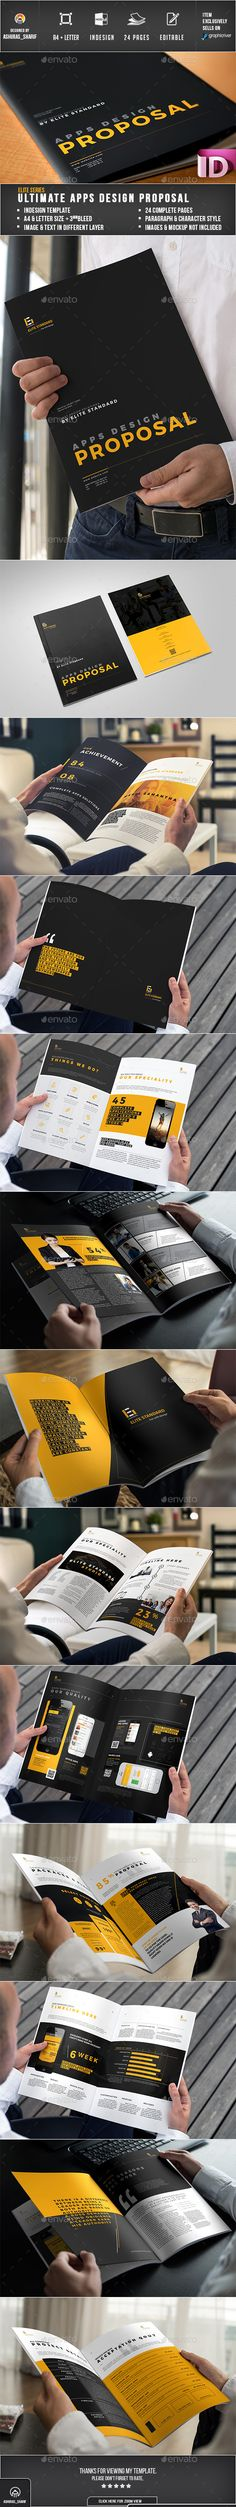 Sponsorship Proposal Proposals, Proposal templates and Layouts - download business proposal template